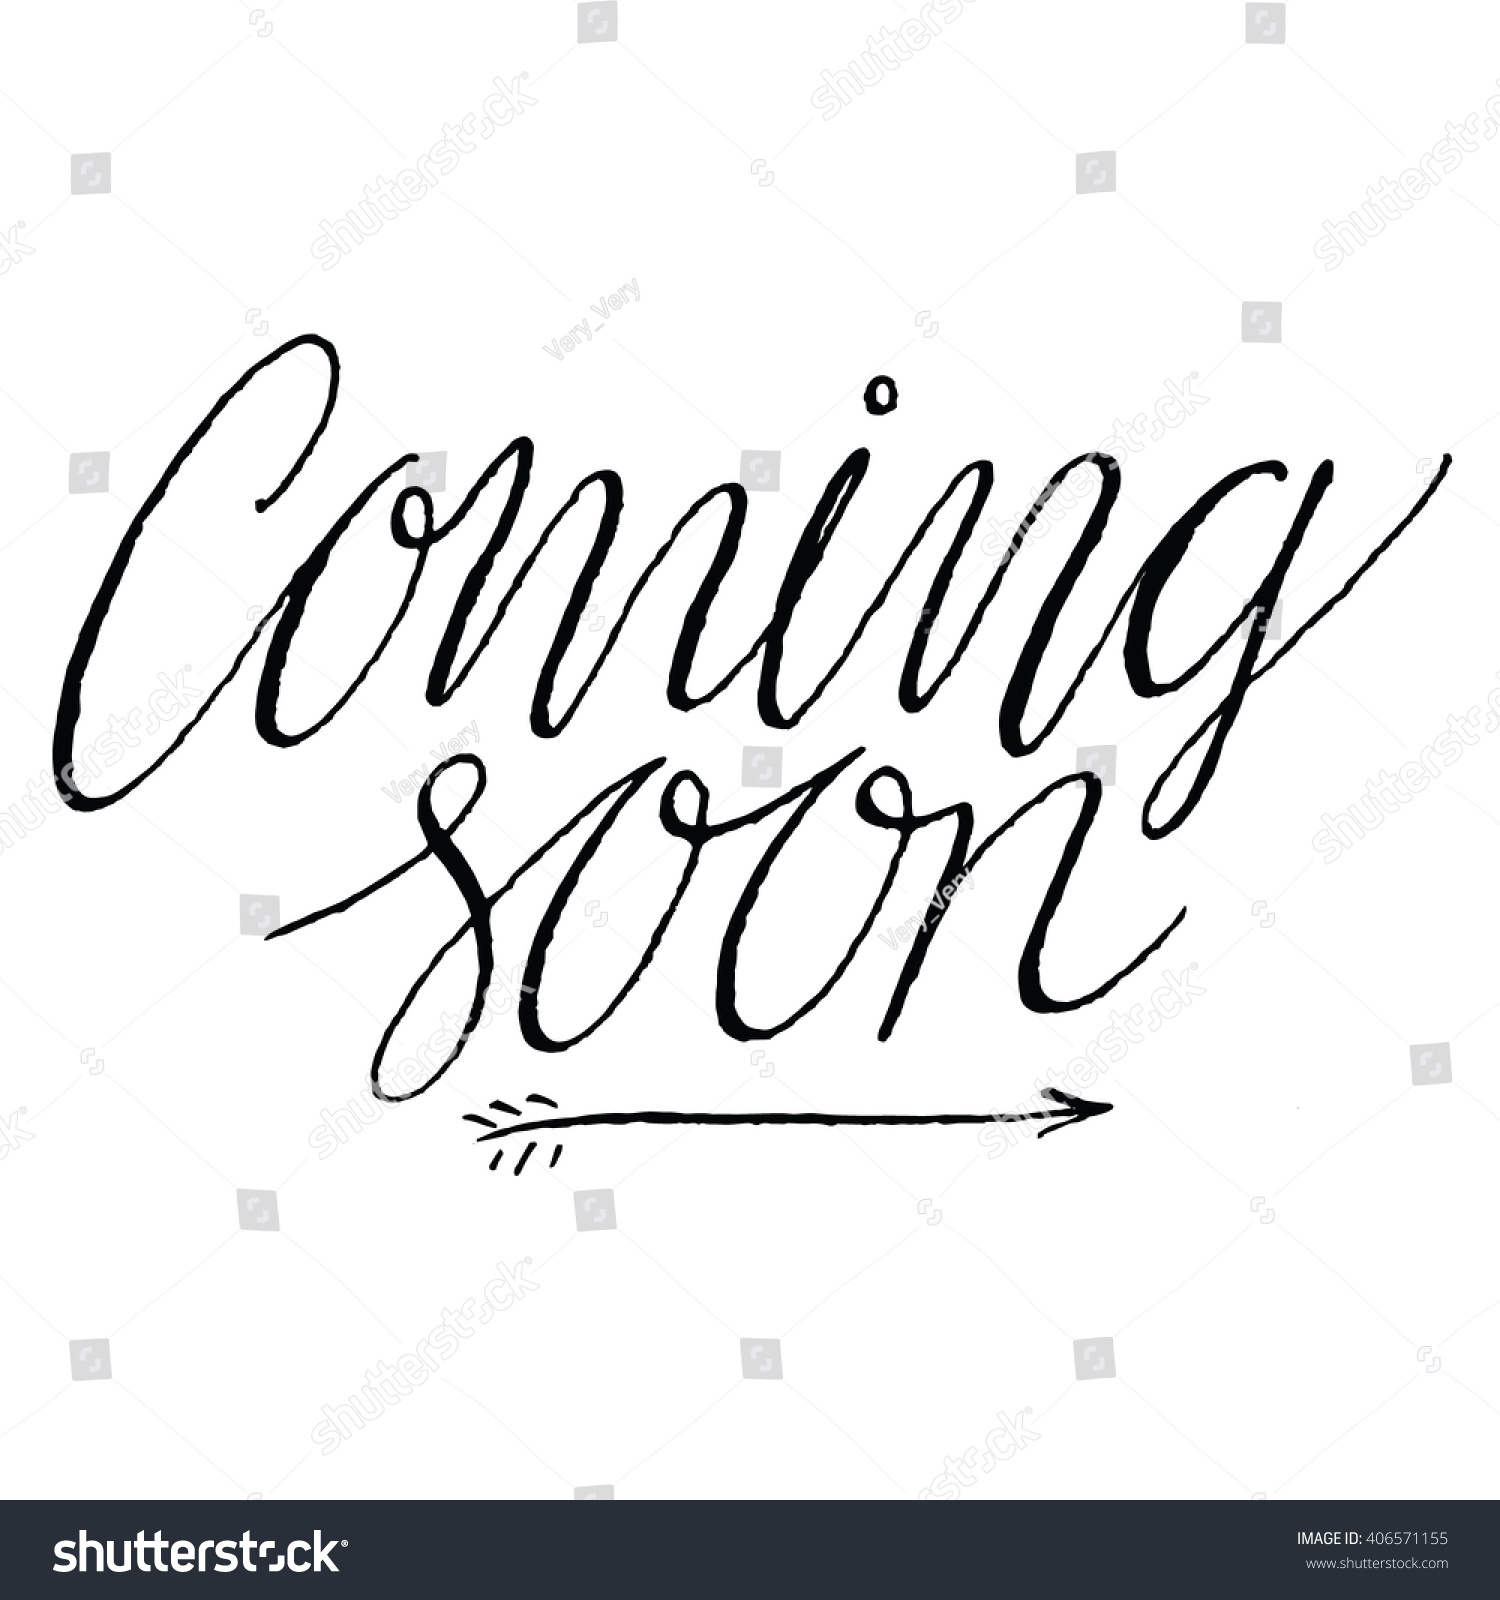 Coming Soon Positive Quote Handwritten Script Stock Vector Royalty Free 406571155